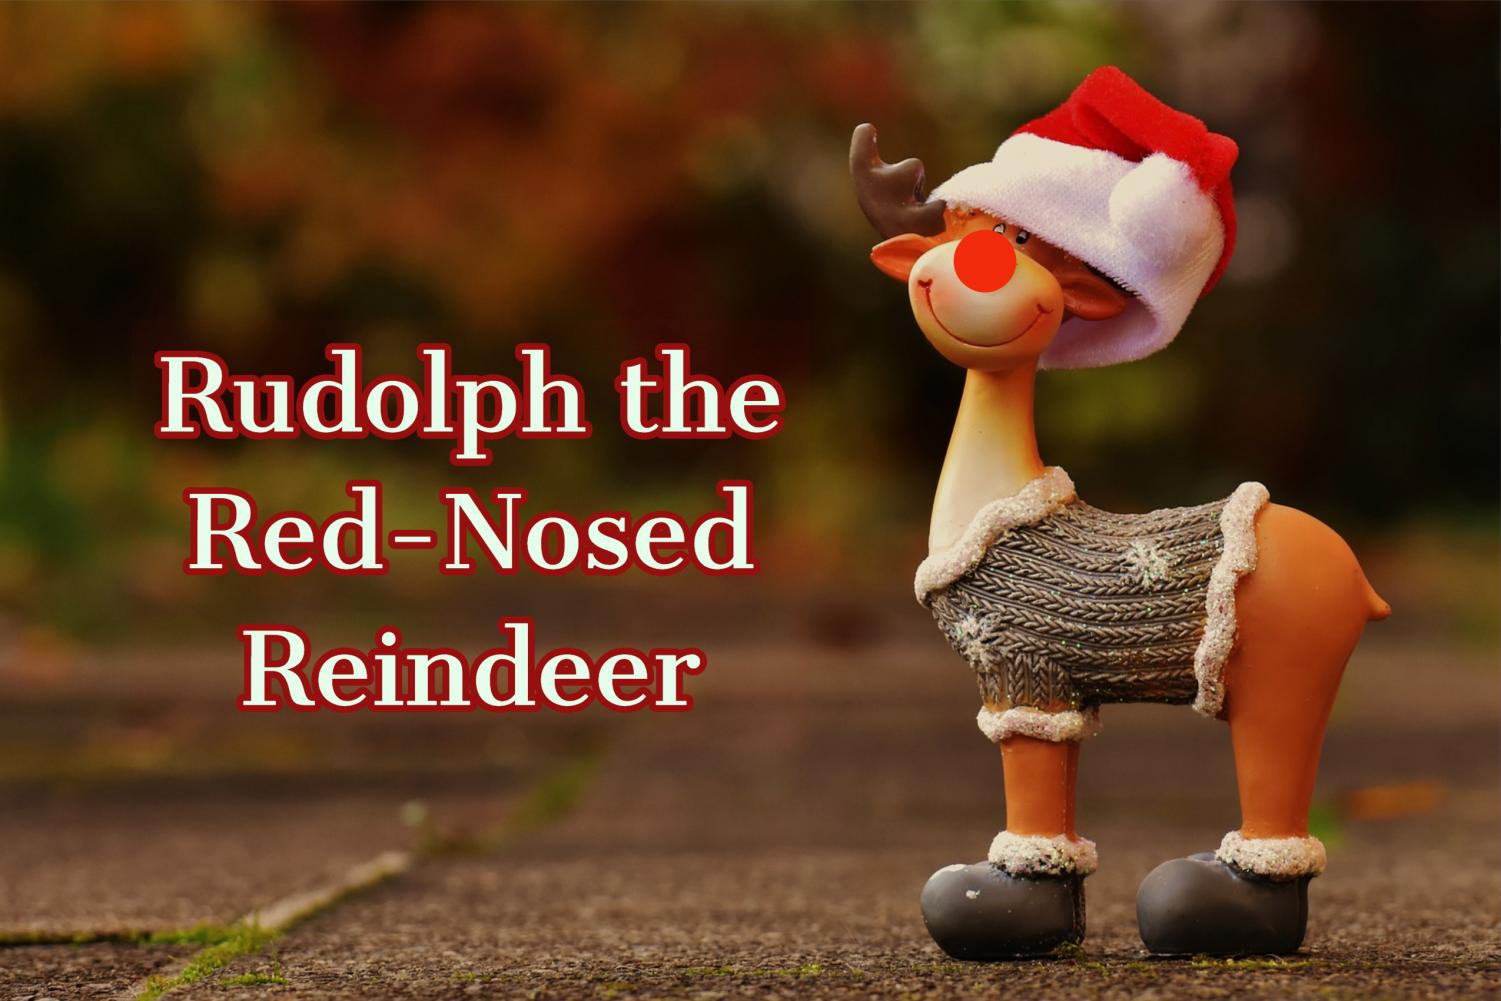 'Rudolph the Red-Nosed Reindeer' (1964) is a television special showcasing the story of Rudolph, a reindeer with a glowing red nose, and his journey to become one of Santa's famous reindeer.